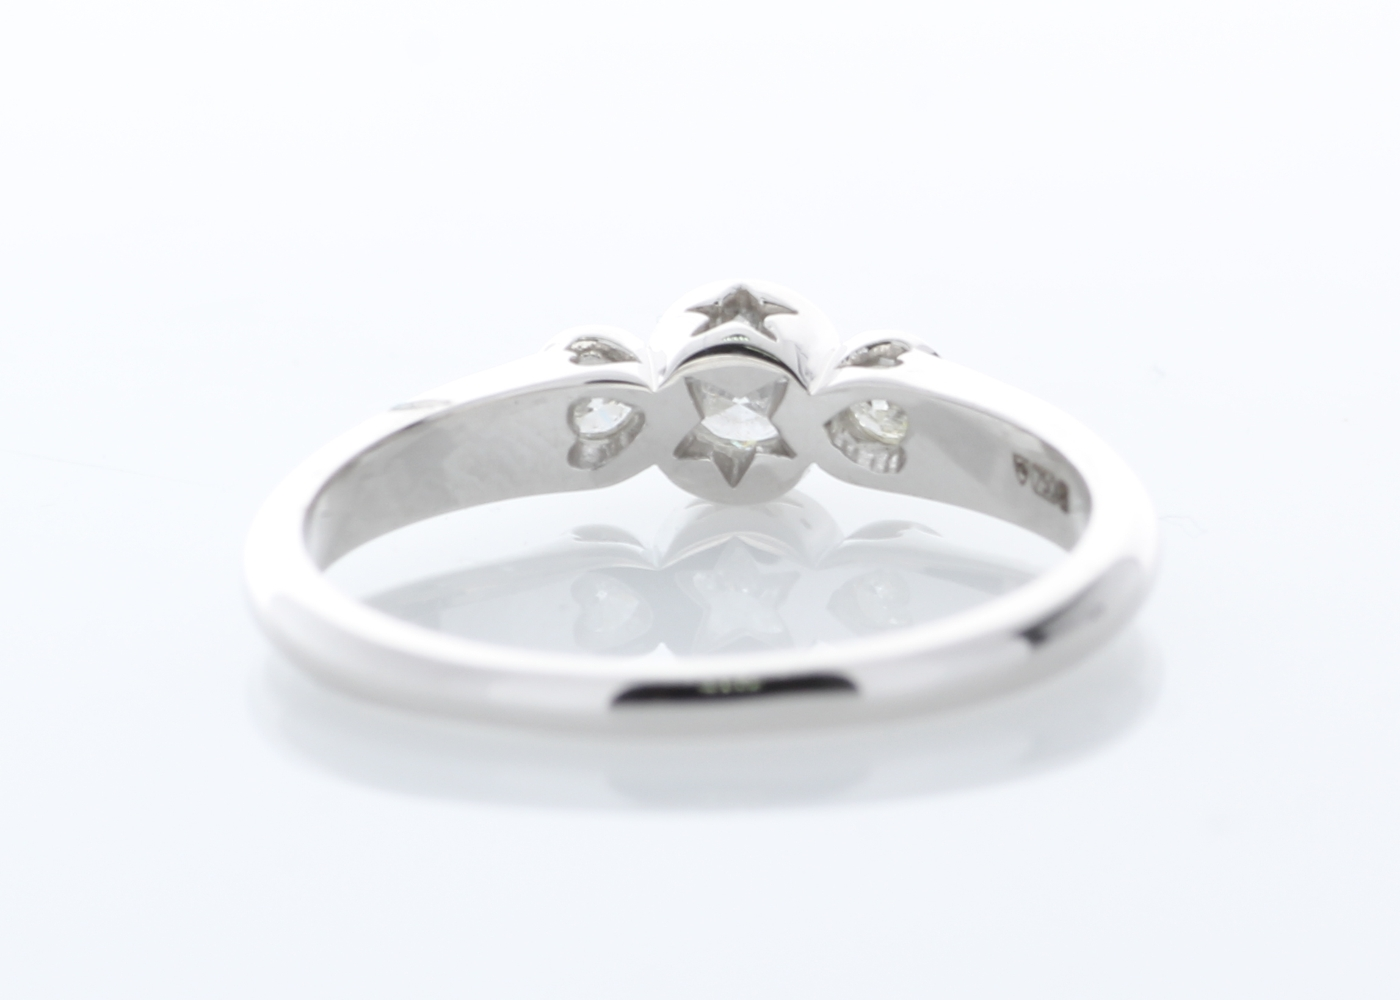 Lot 32 - 18ct Three Stone Rub Over Set Diamond Ring 0.33 Carats